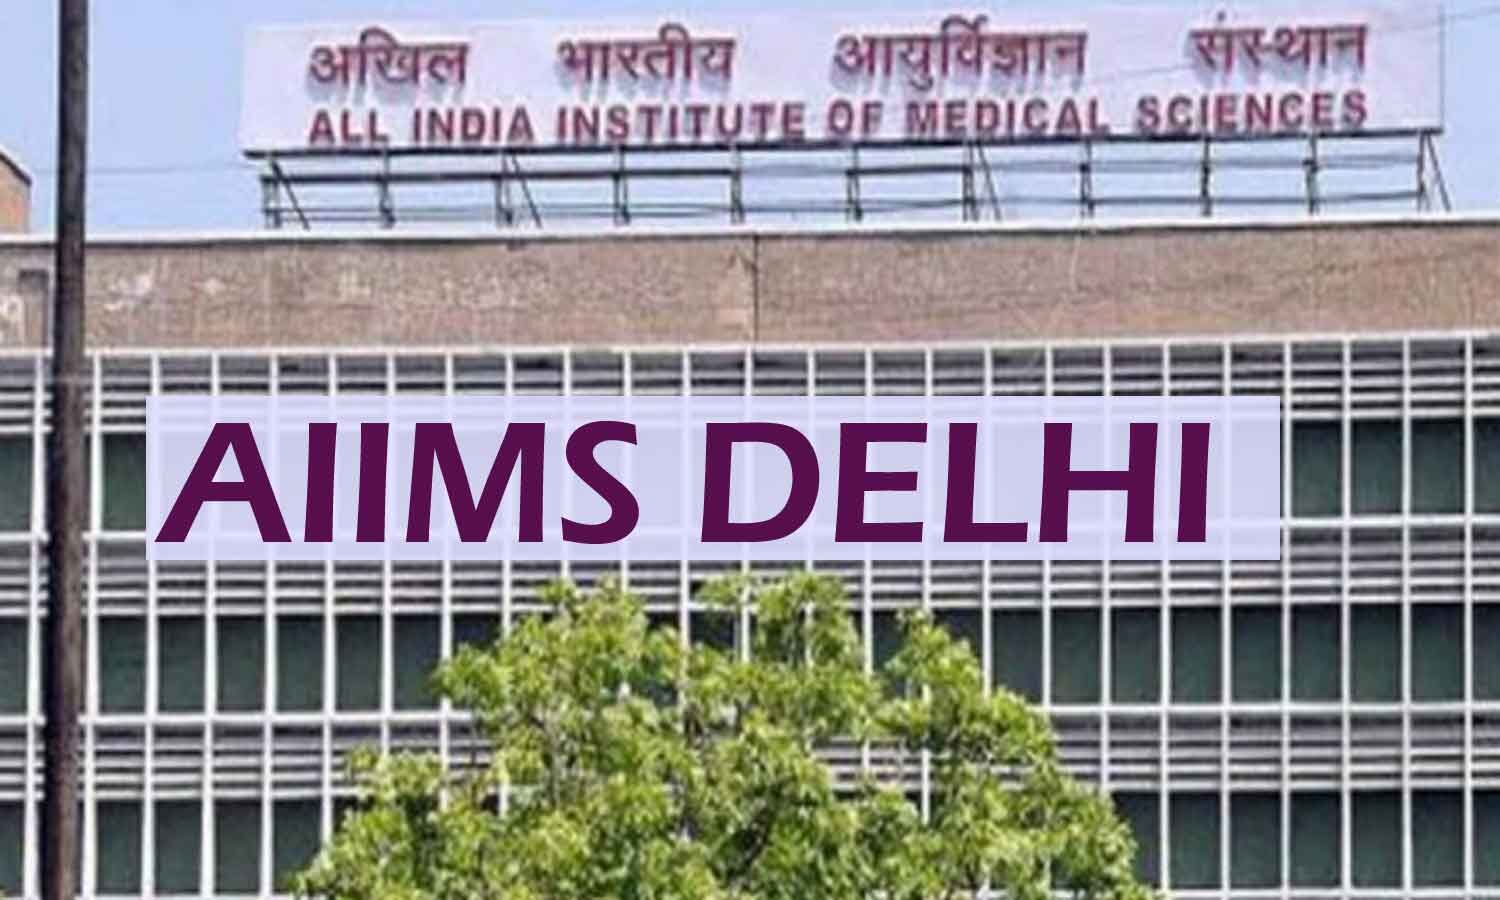 COVID-19 policies of Govt driven by babus not epidemiologists: AIIMS Gastro HOD